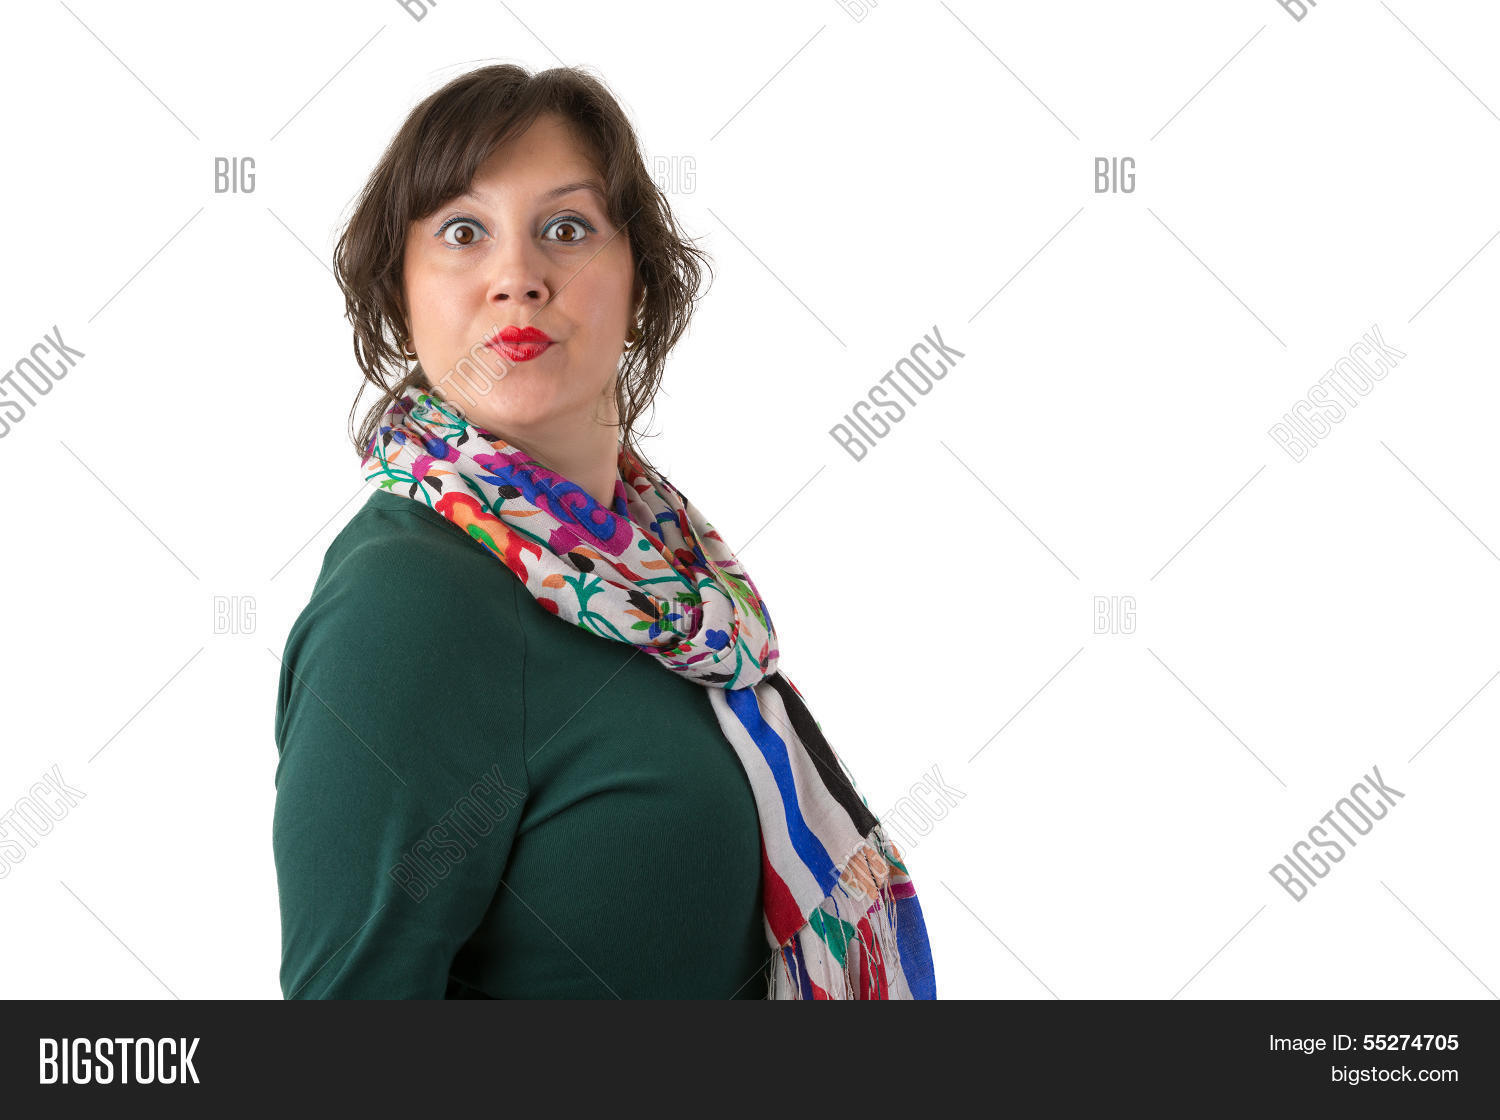 Women with big eyes looking at you angrily perhaps she annoyed with your actions and higher authority than you have